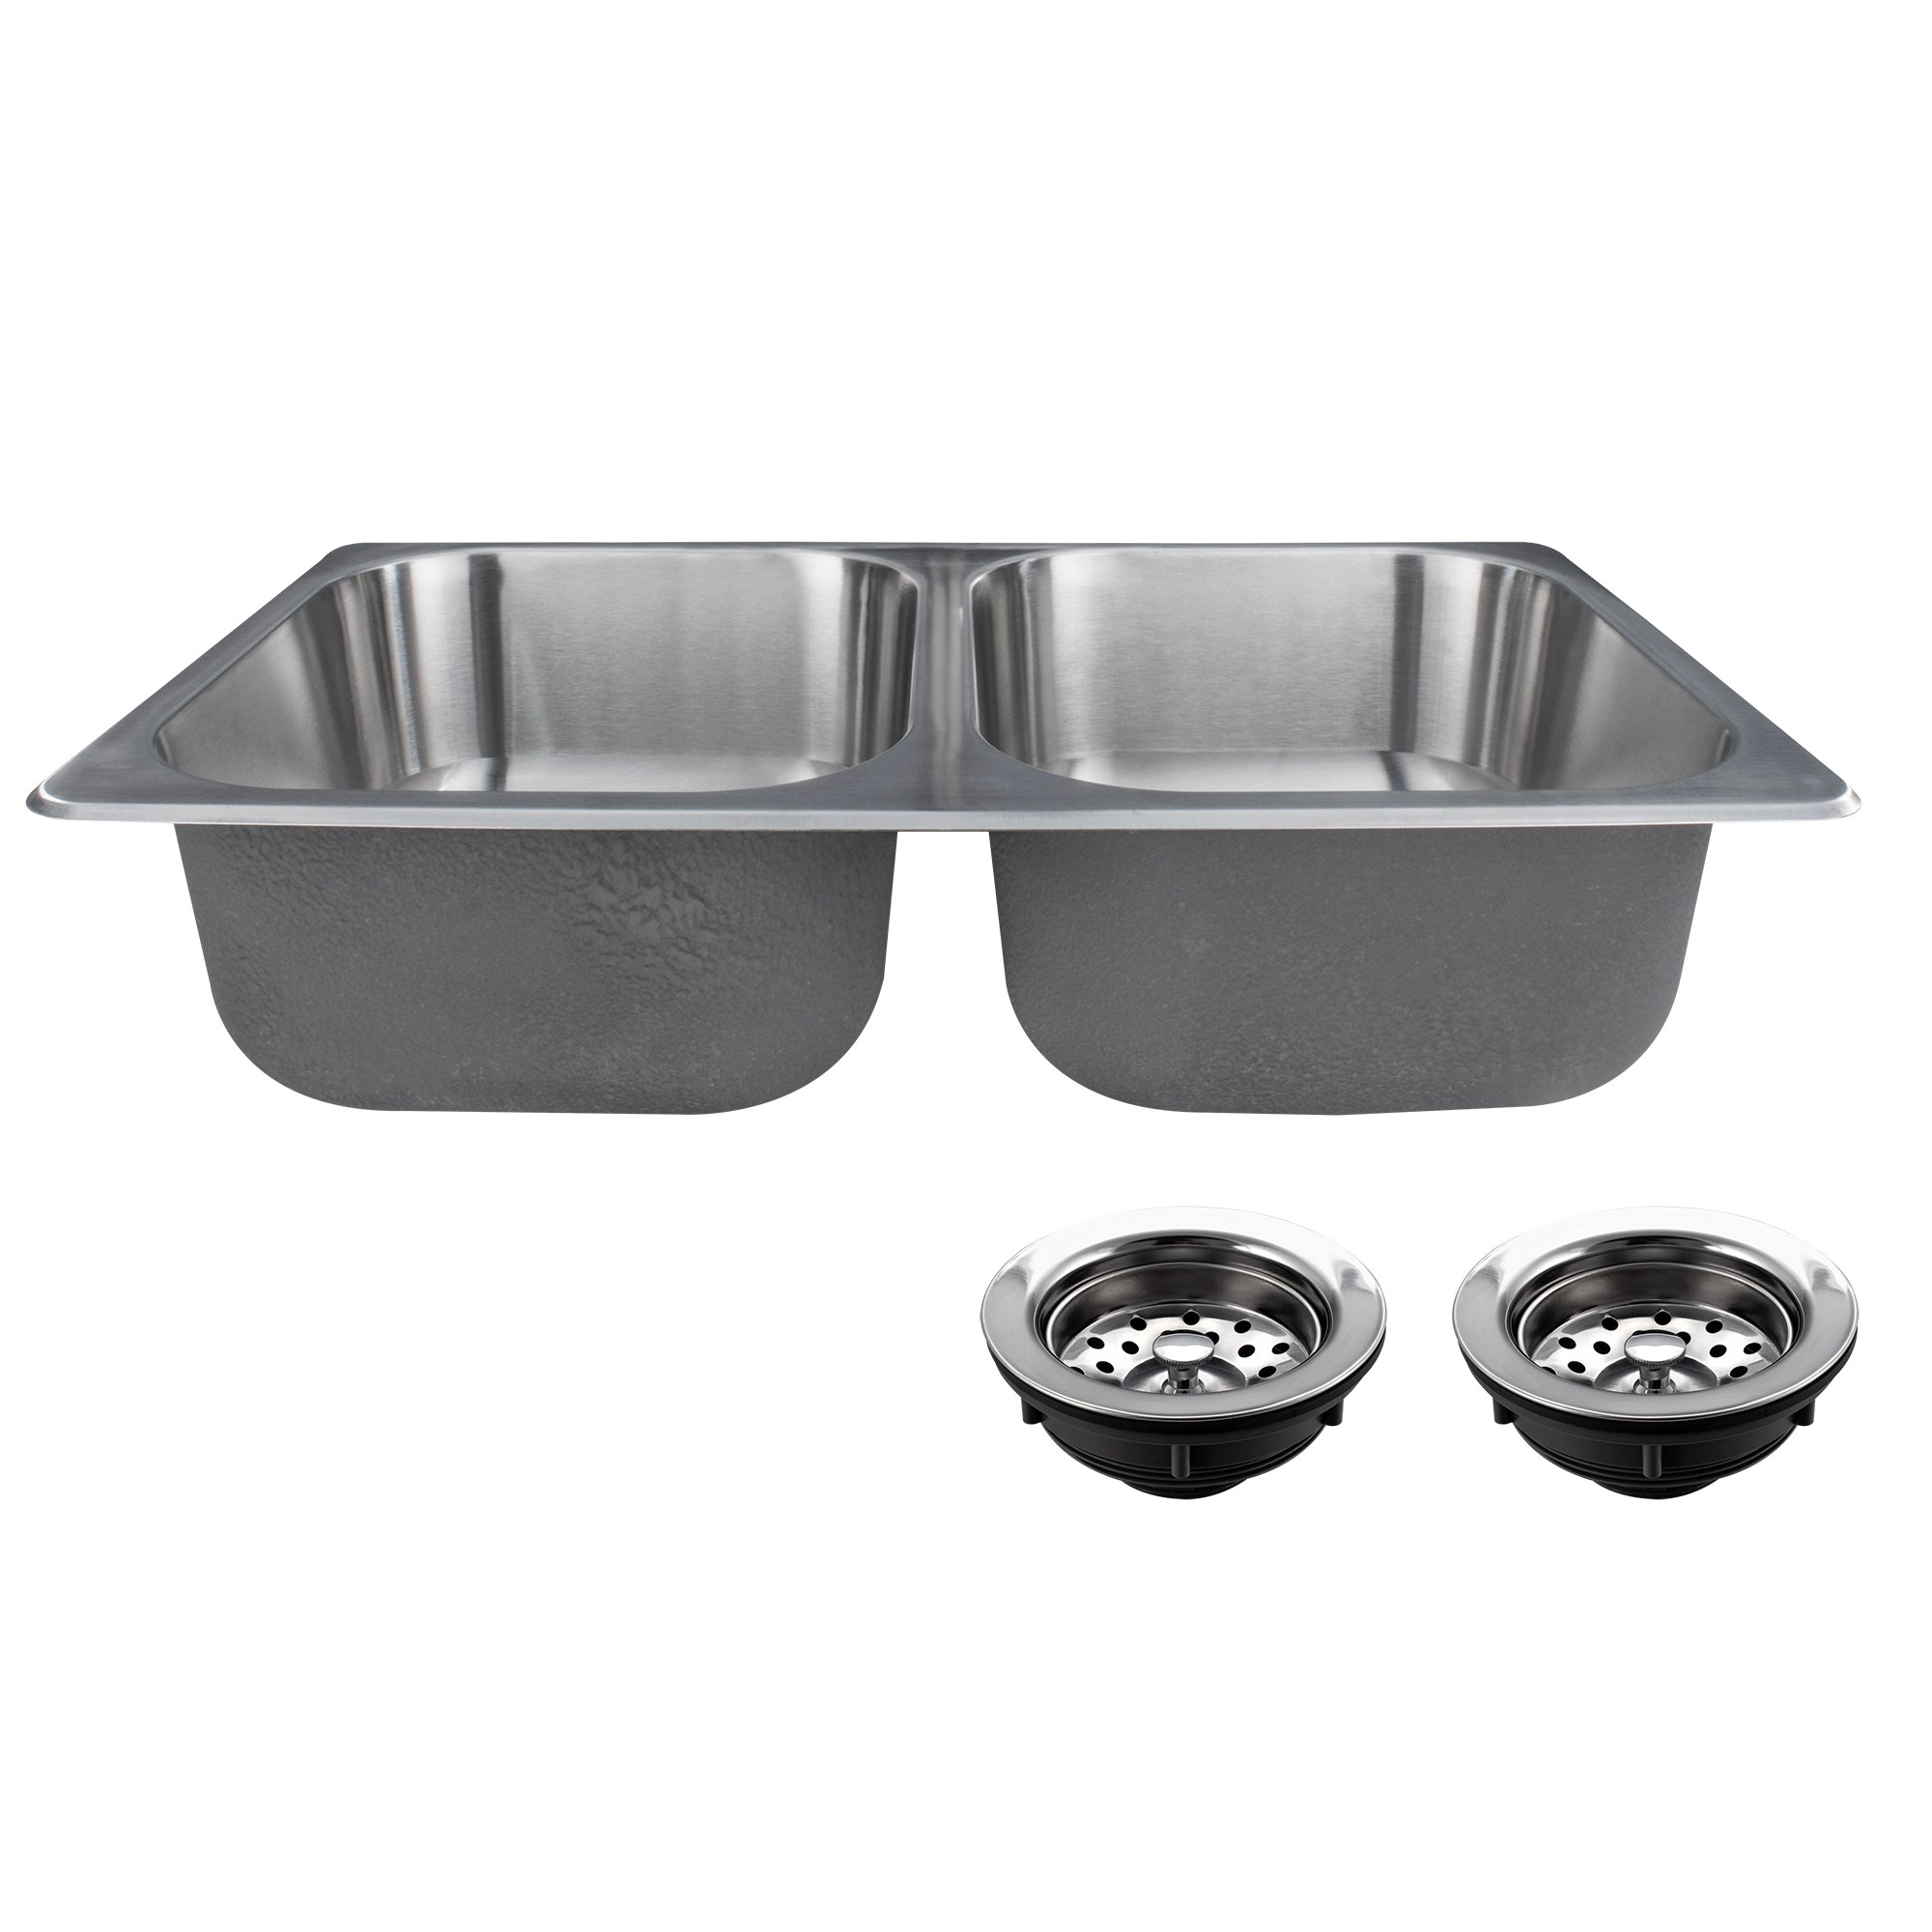 Stainless Steel Double Sink Double Stainless Steel Rv Sink 27 Quot X 16 Quot X 7 Quot Recpro